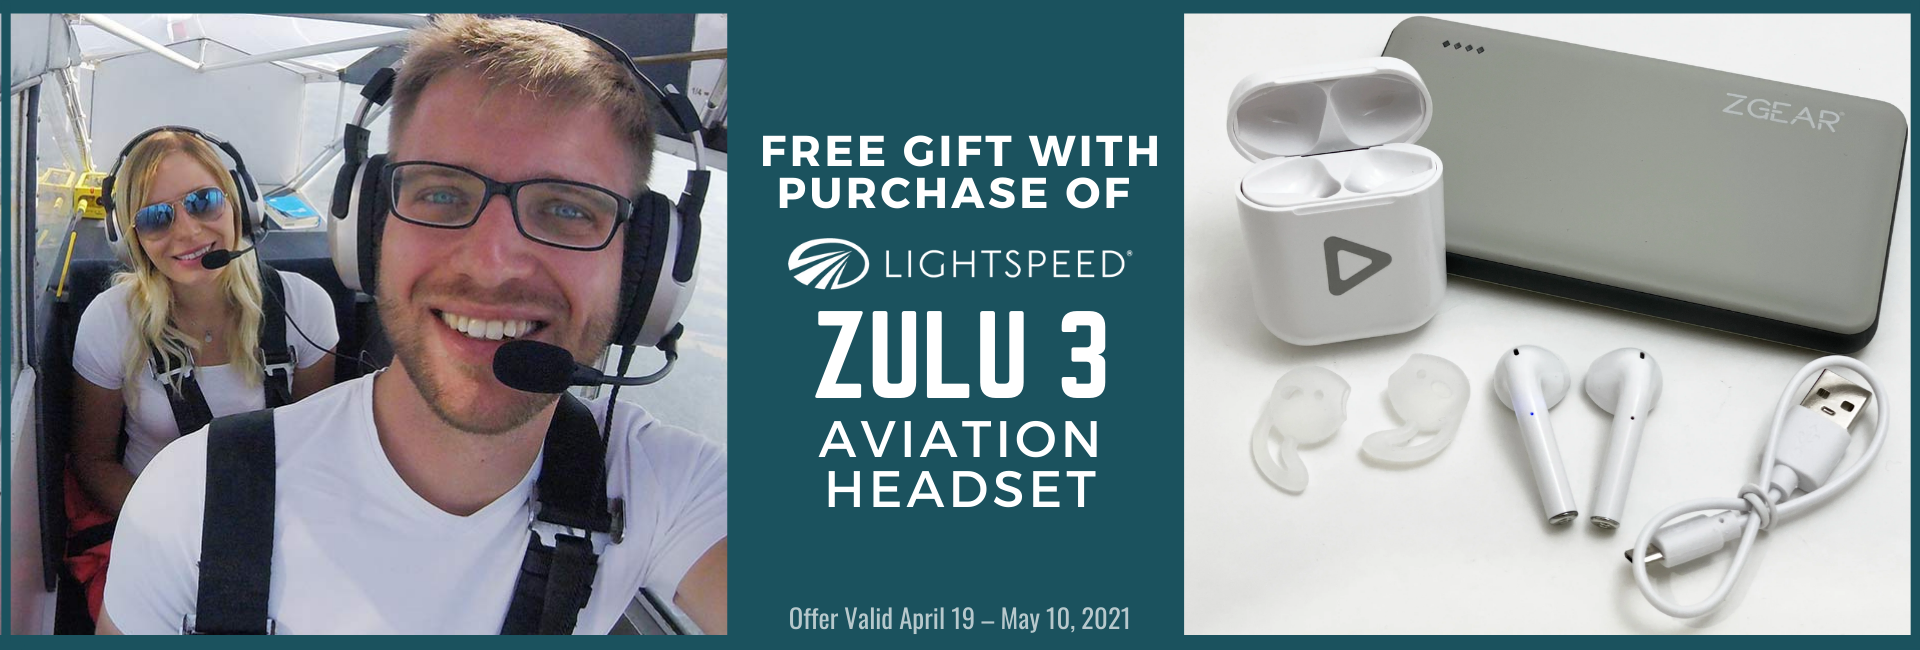 FREE Gift With Purchase of Lightspeed Zulu 3 from Fallon Pilot Shop